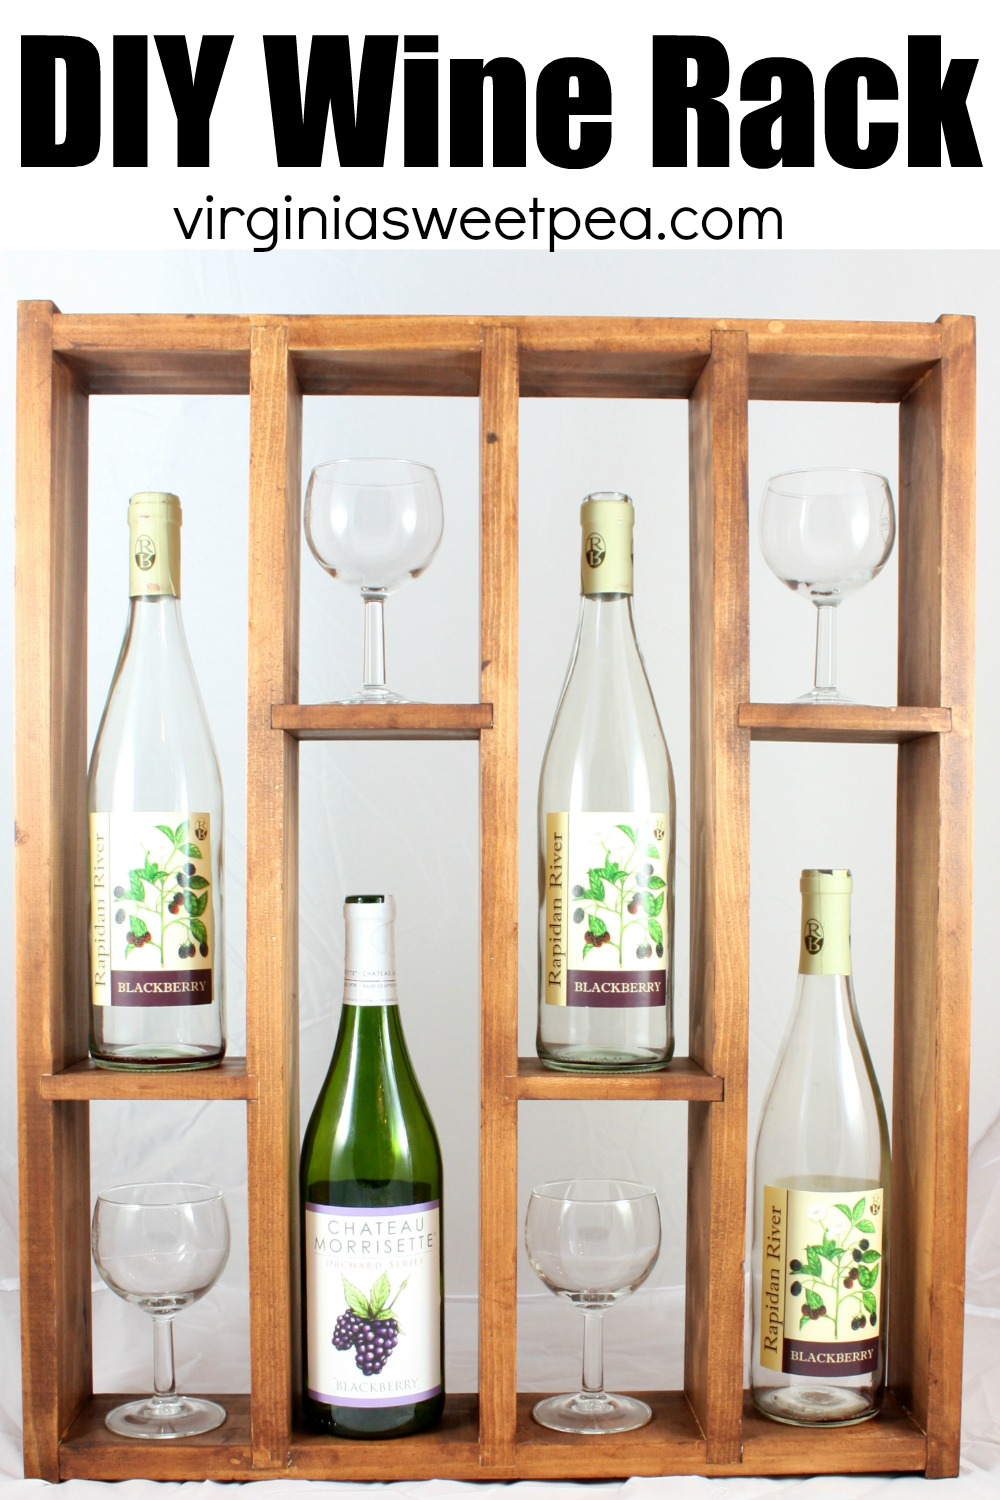 DIY Wine Rack - Learn how to make a DIY wine rack to use to both store & display your favorite wine bottles and glasses.  Hang it on a wall or use it on a flat surface.  #diywinerack #winerack #buildawinerack via @spaula